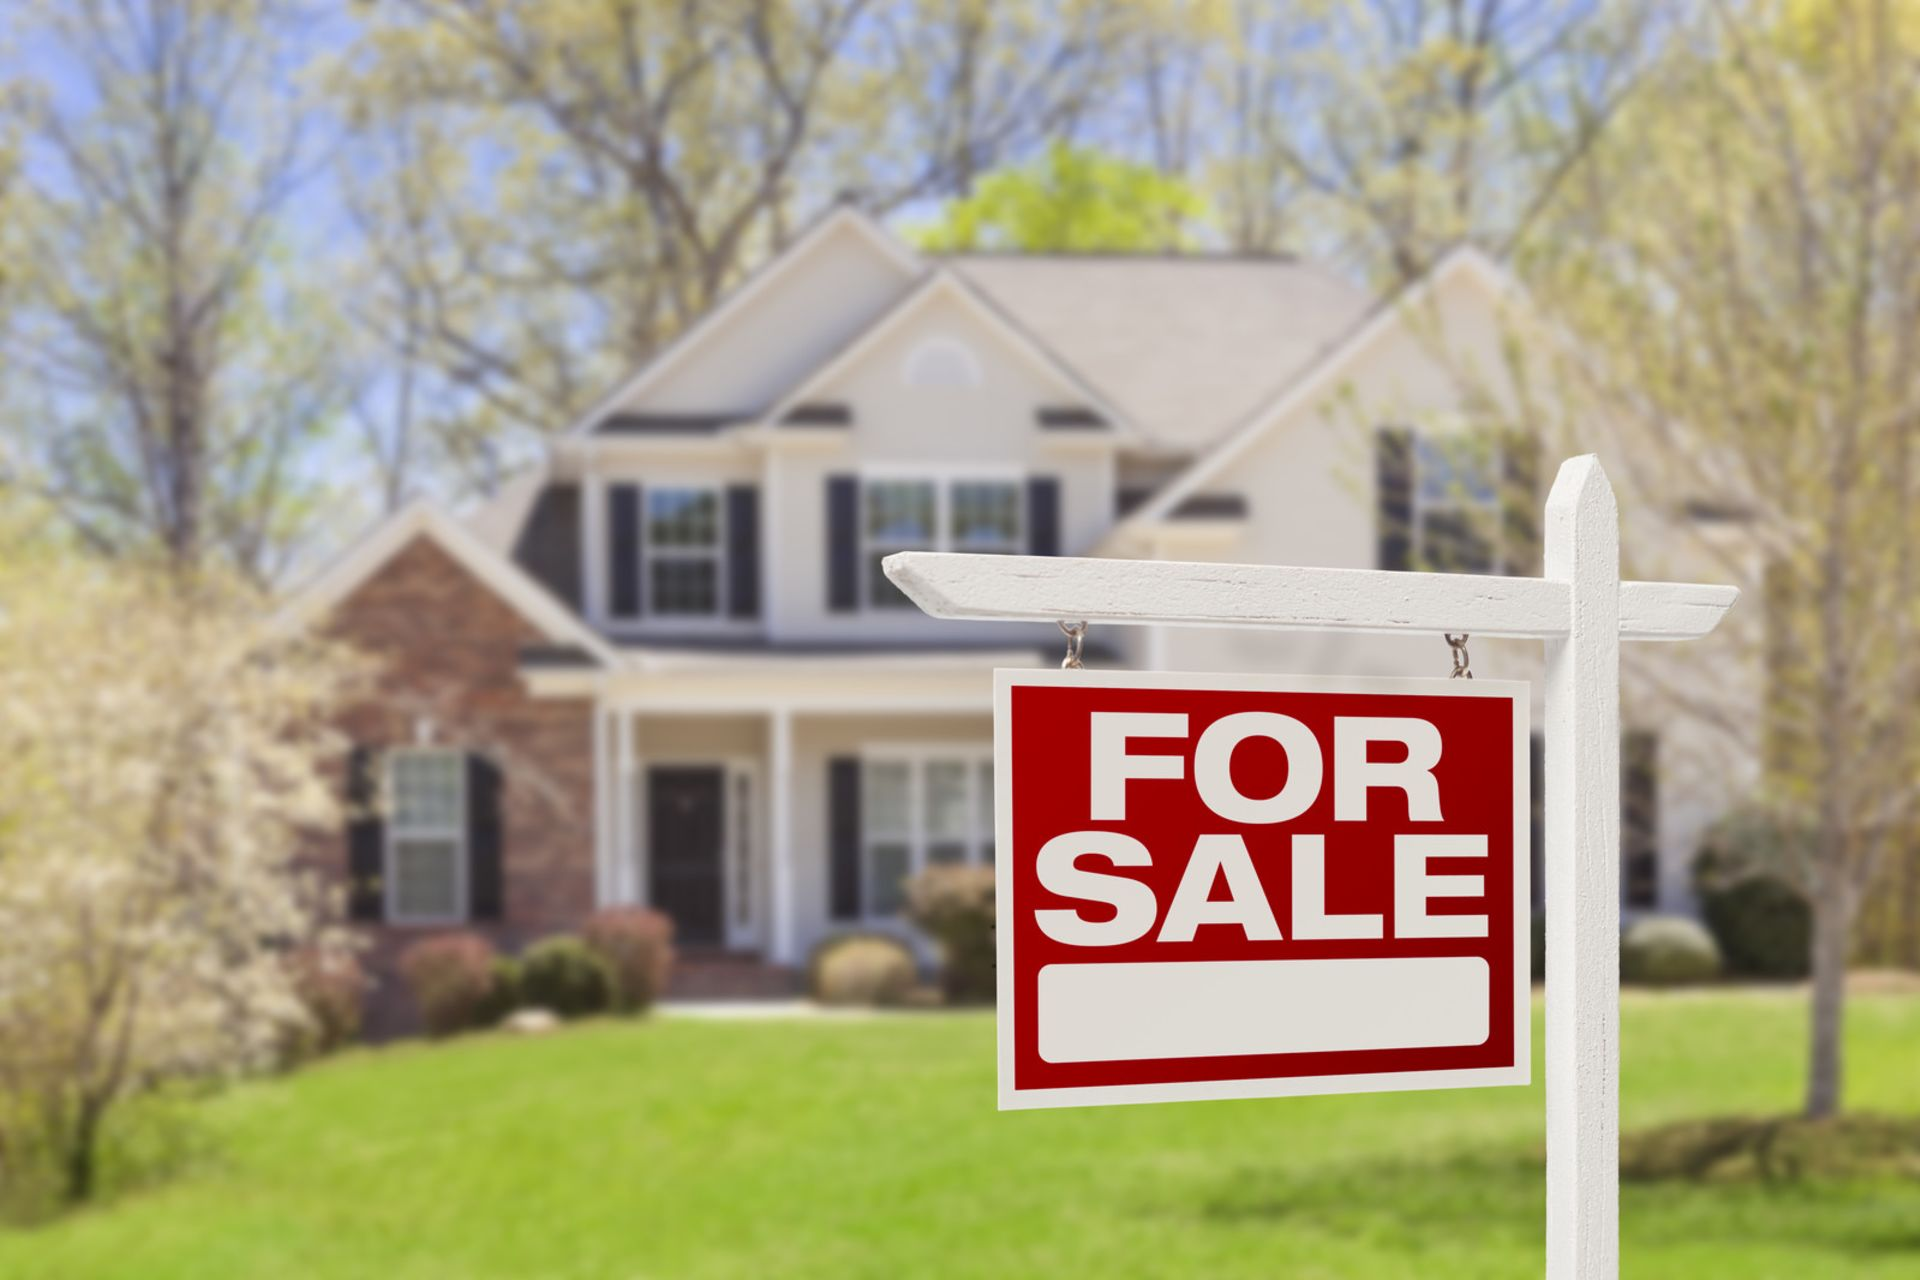 How a Real Estate Agent Can Help You – The Seller